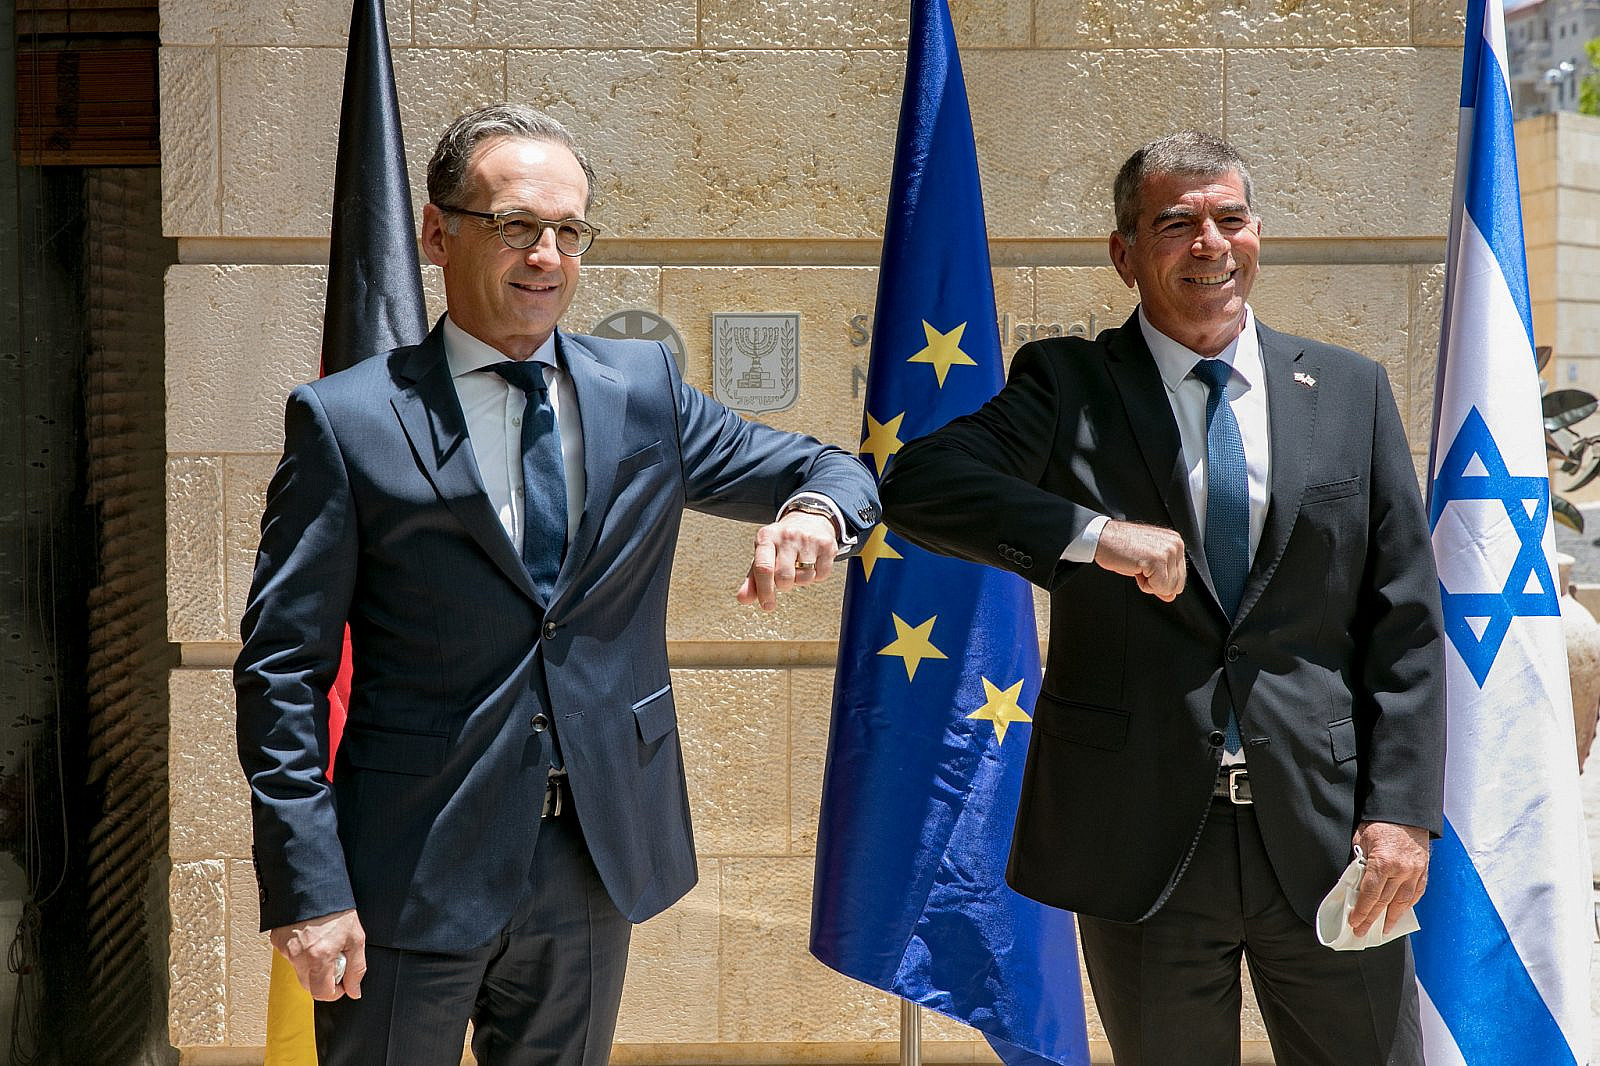 Israeli Foreign Minister Gabi Ashkenazi meets with German Foreign Minister Heiko Maas at the Ministry of Foreign Affairs in Jerusalem on June 10, 2020. (Olivier Fitoussi/Flash90)